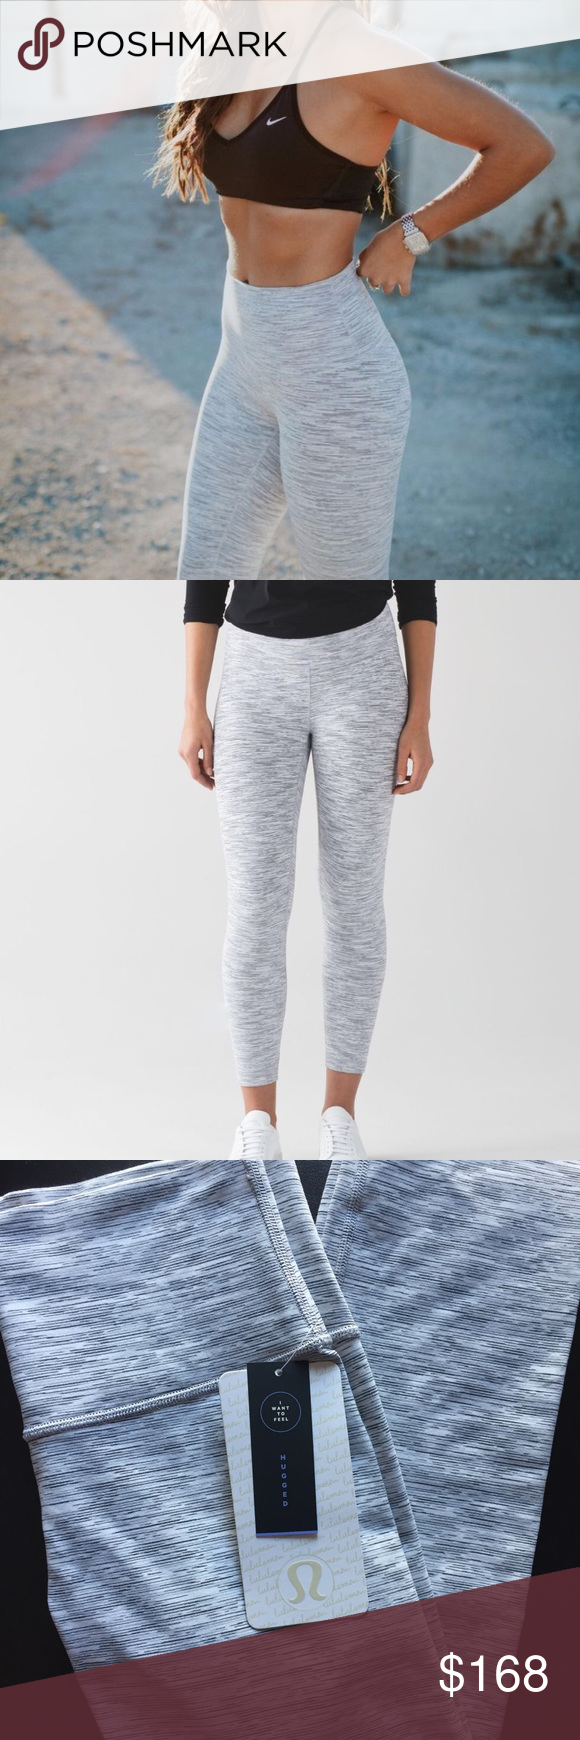 bd75159440be5 NWT Wee Are From Space High Times Ice Gray Alpine White High Times (WAGG)-  size 2 & 4 available NWT - Price is Firm on here. lululemon athletica Pants  ...